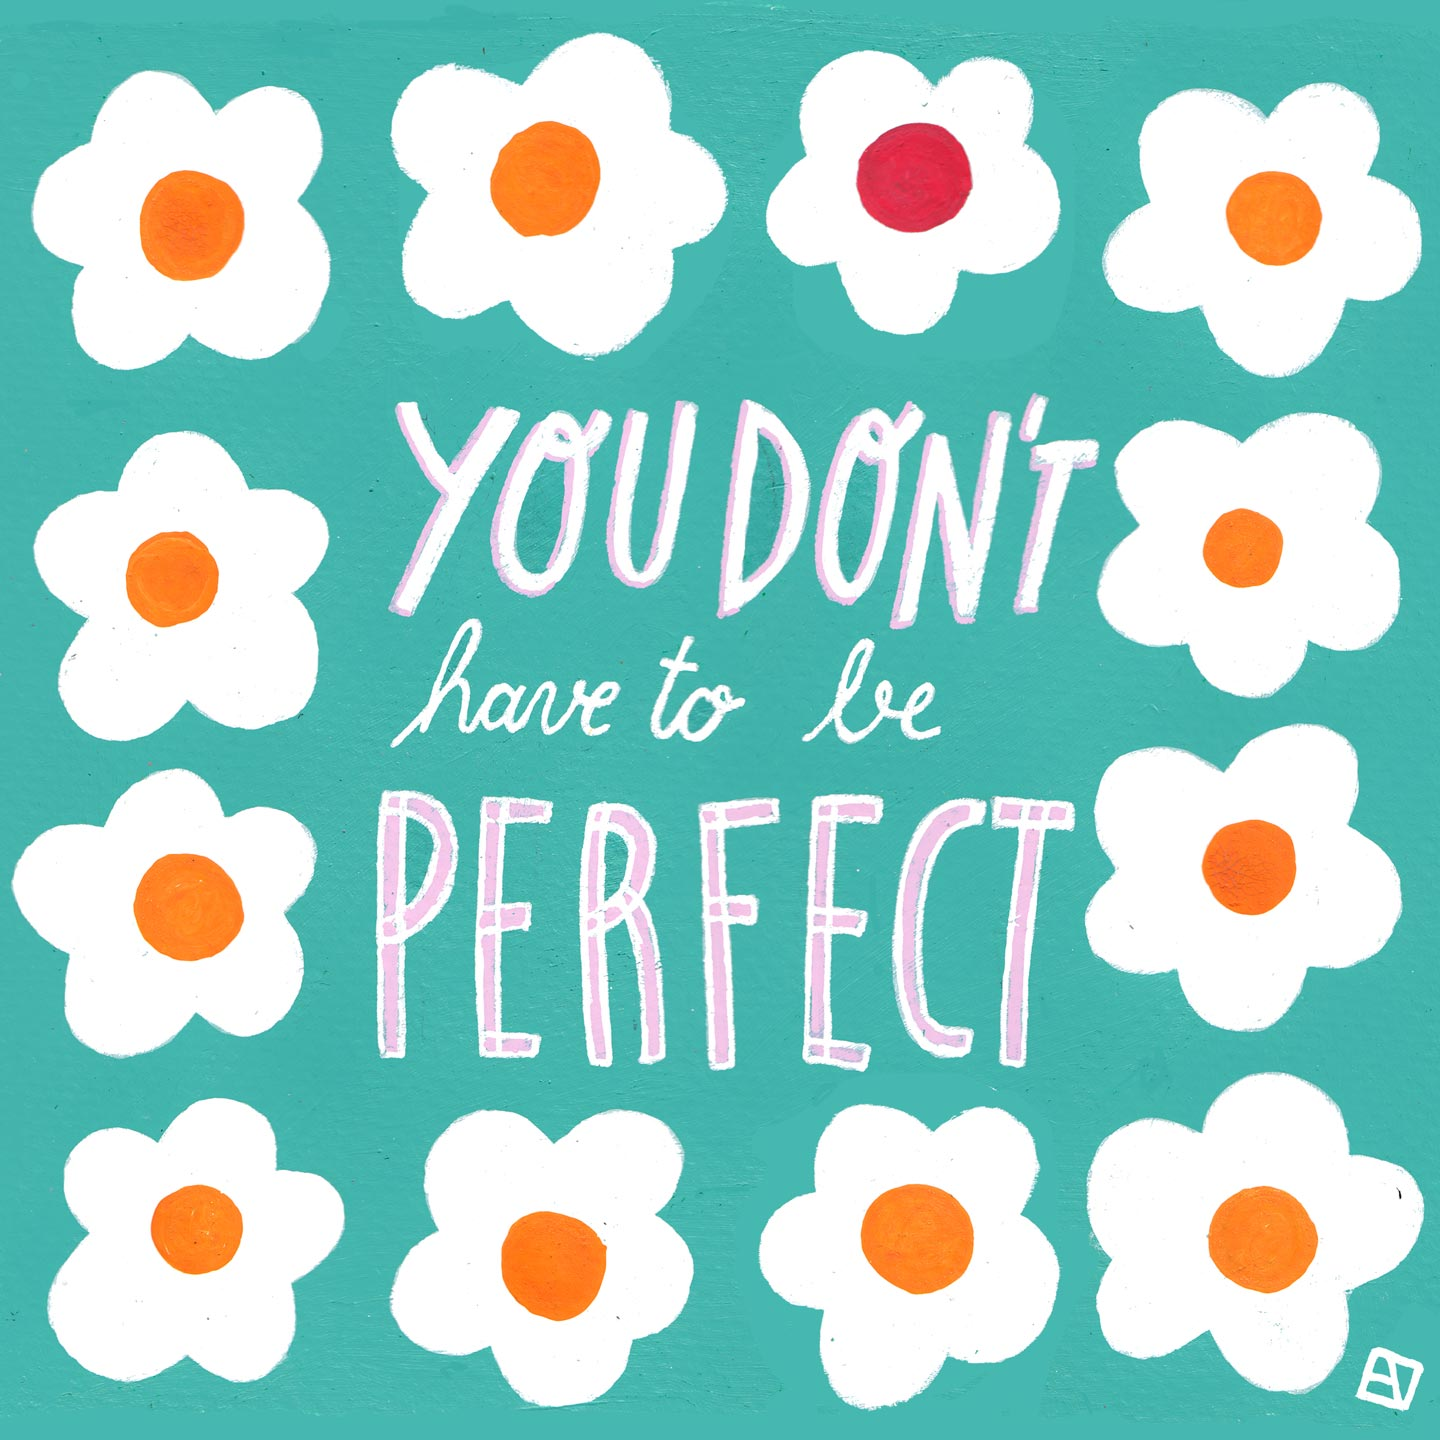 You don't have to be perfect